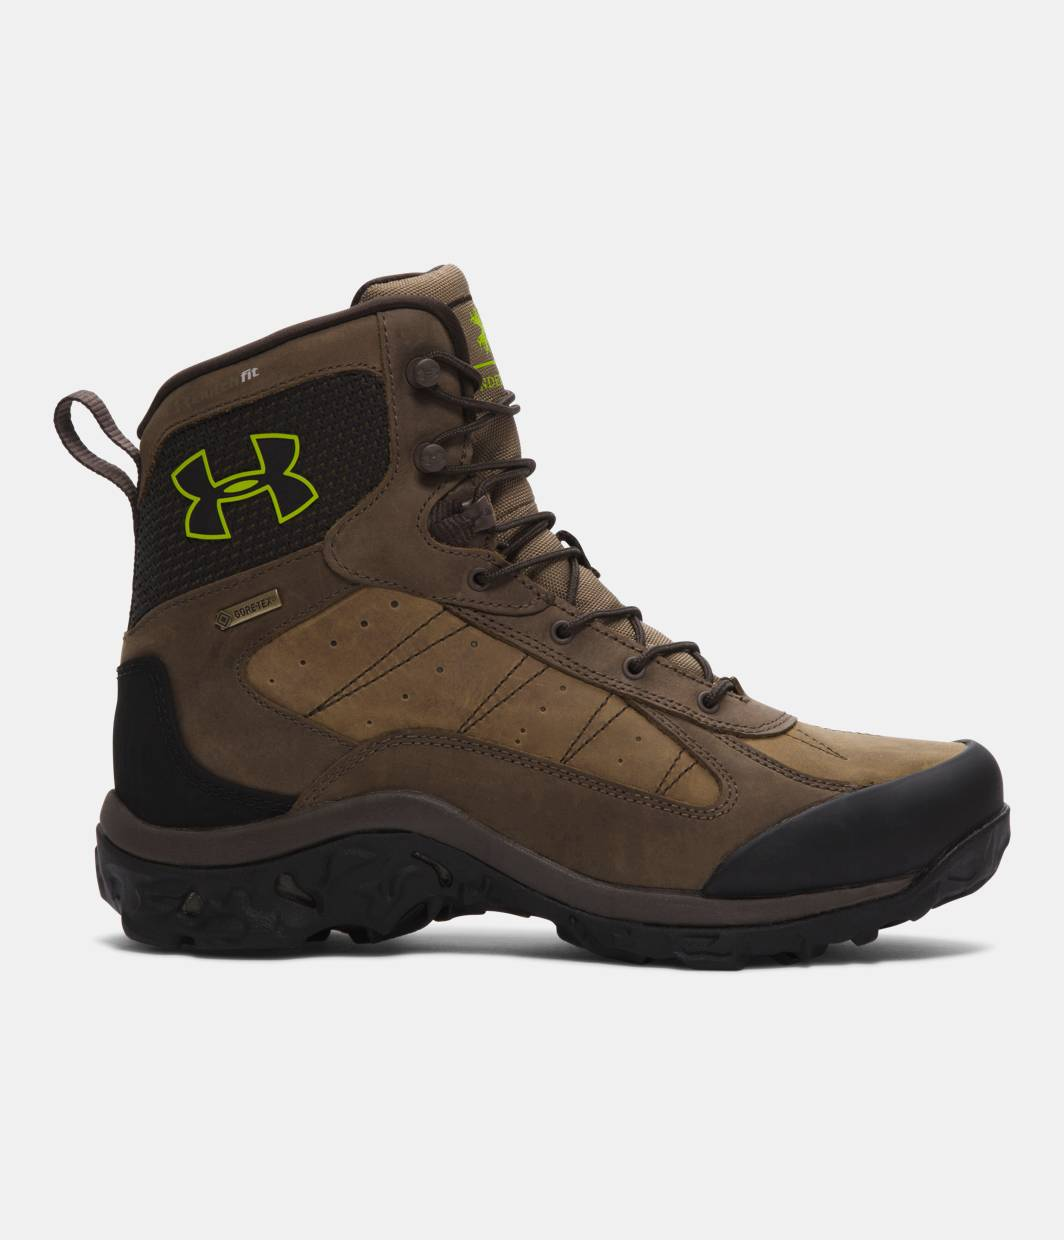 Under armour leather work gloves - Men S Ua Wall Hanger Leather Boots Uniform Zoomed Image